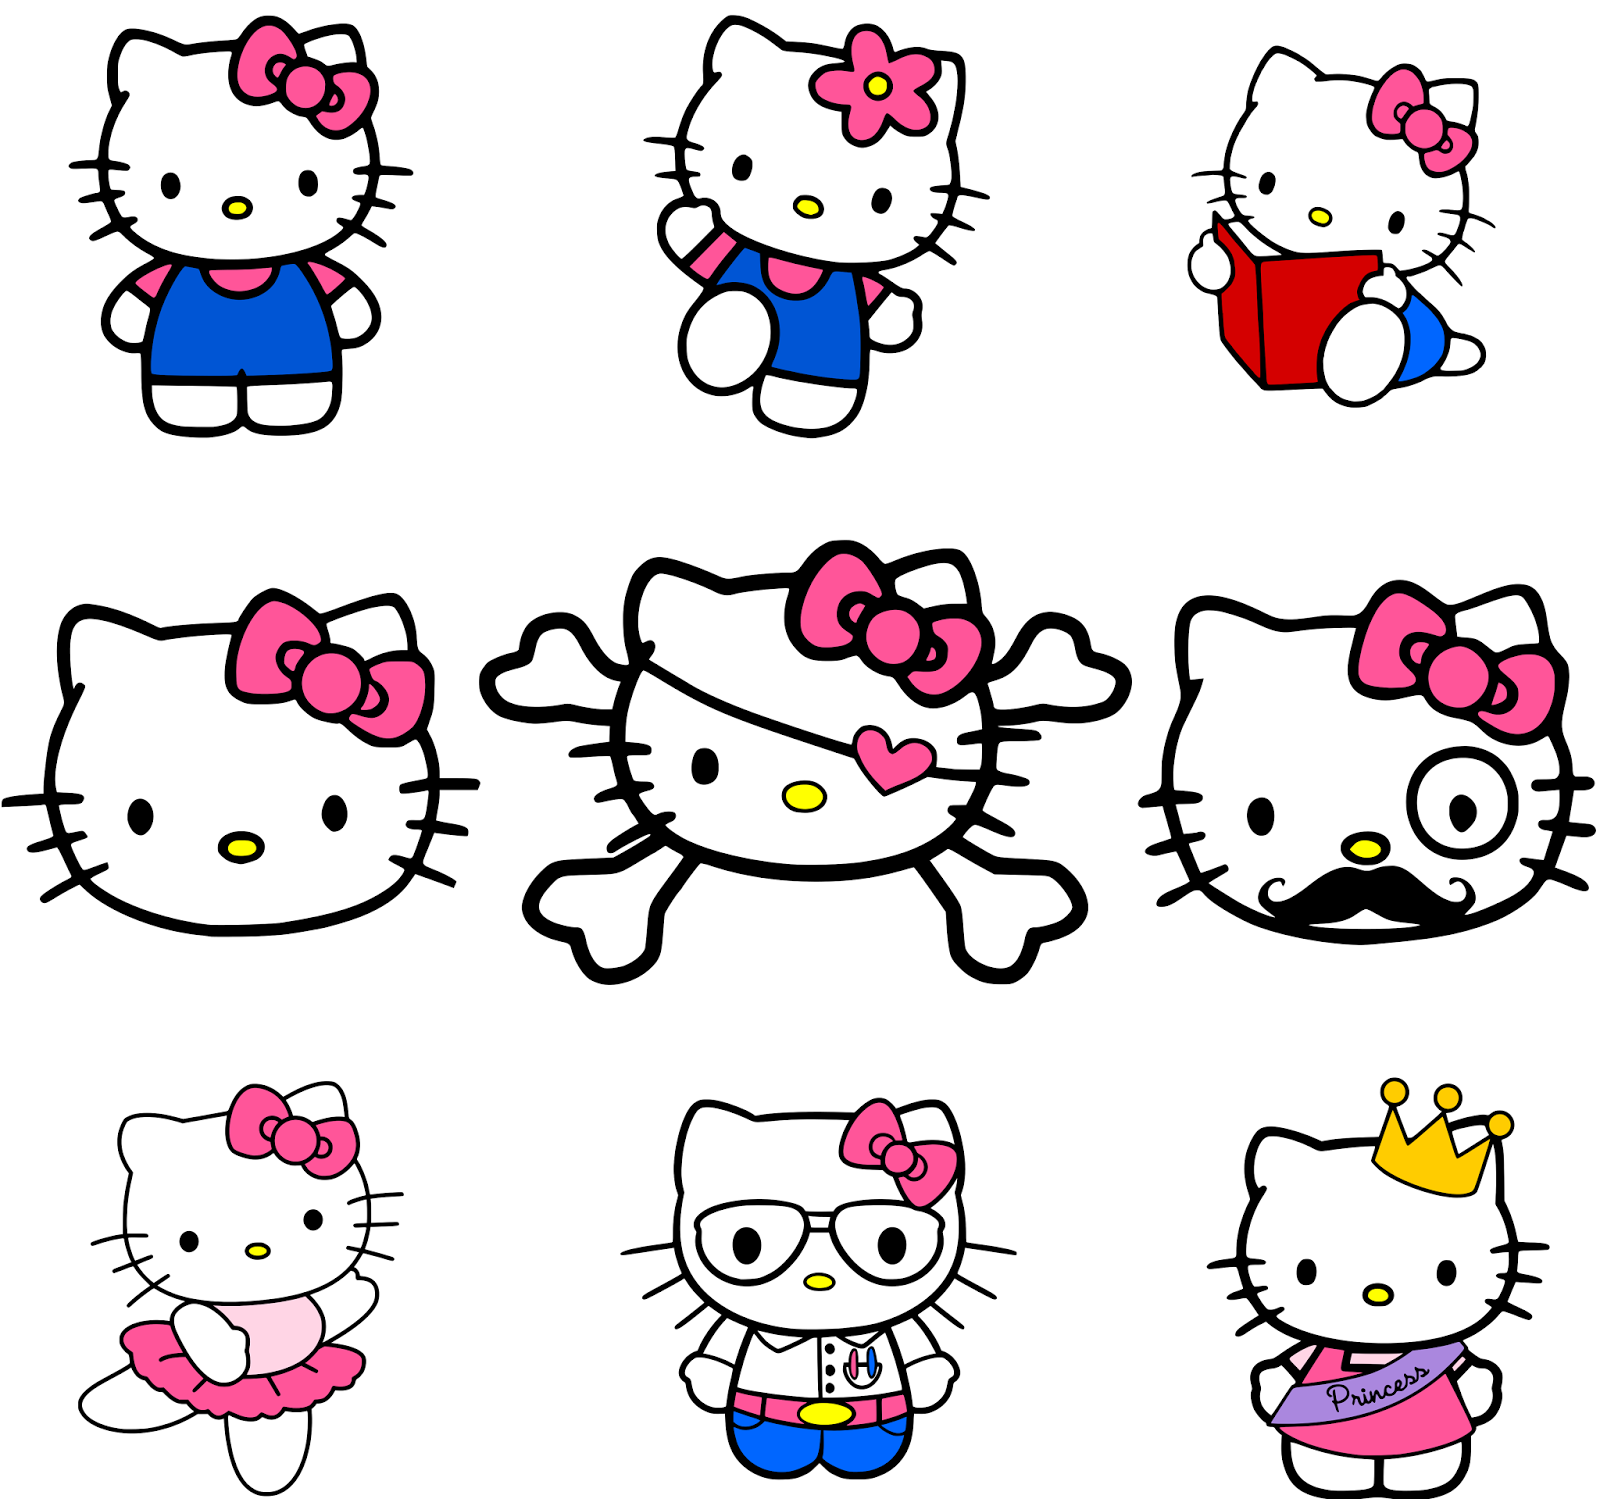 3eebfdcf0 Krafty Nook: Hello Kitty SVG | SVG Files and/or Ideas | Krafty nook ...